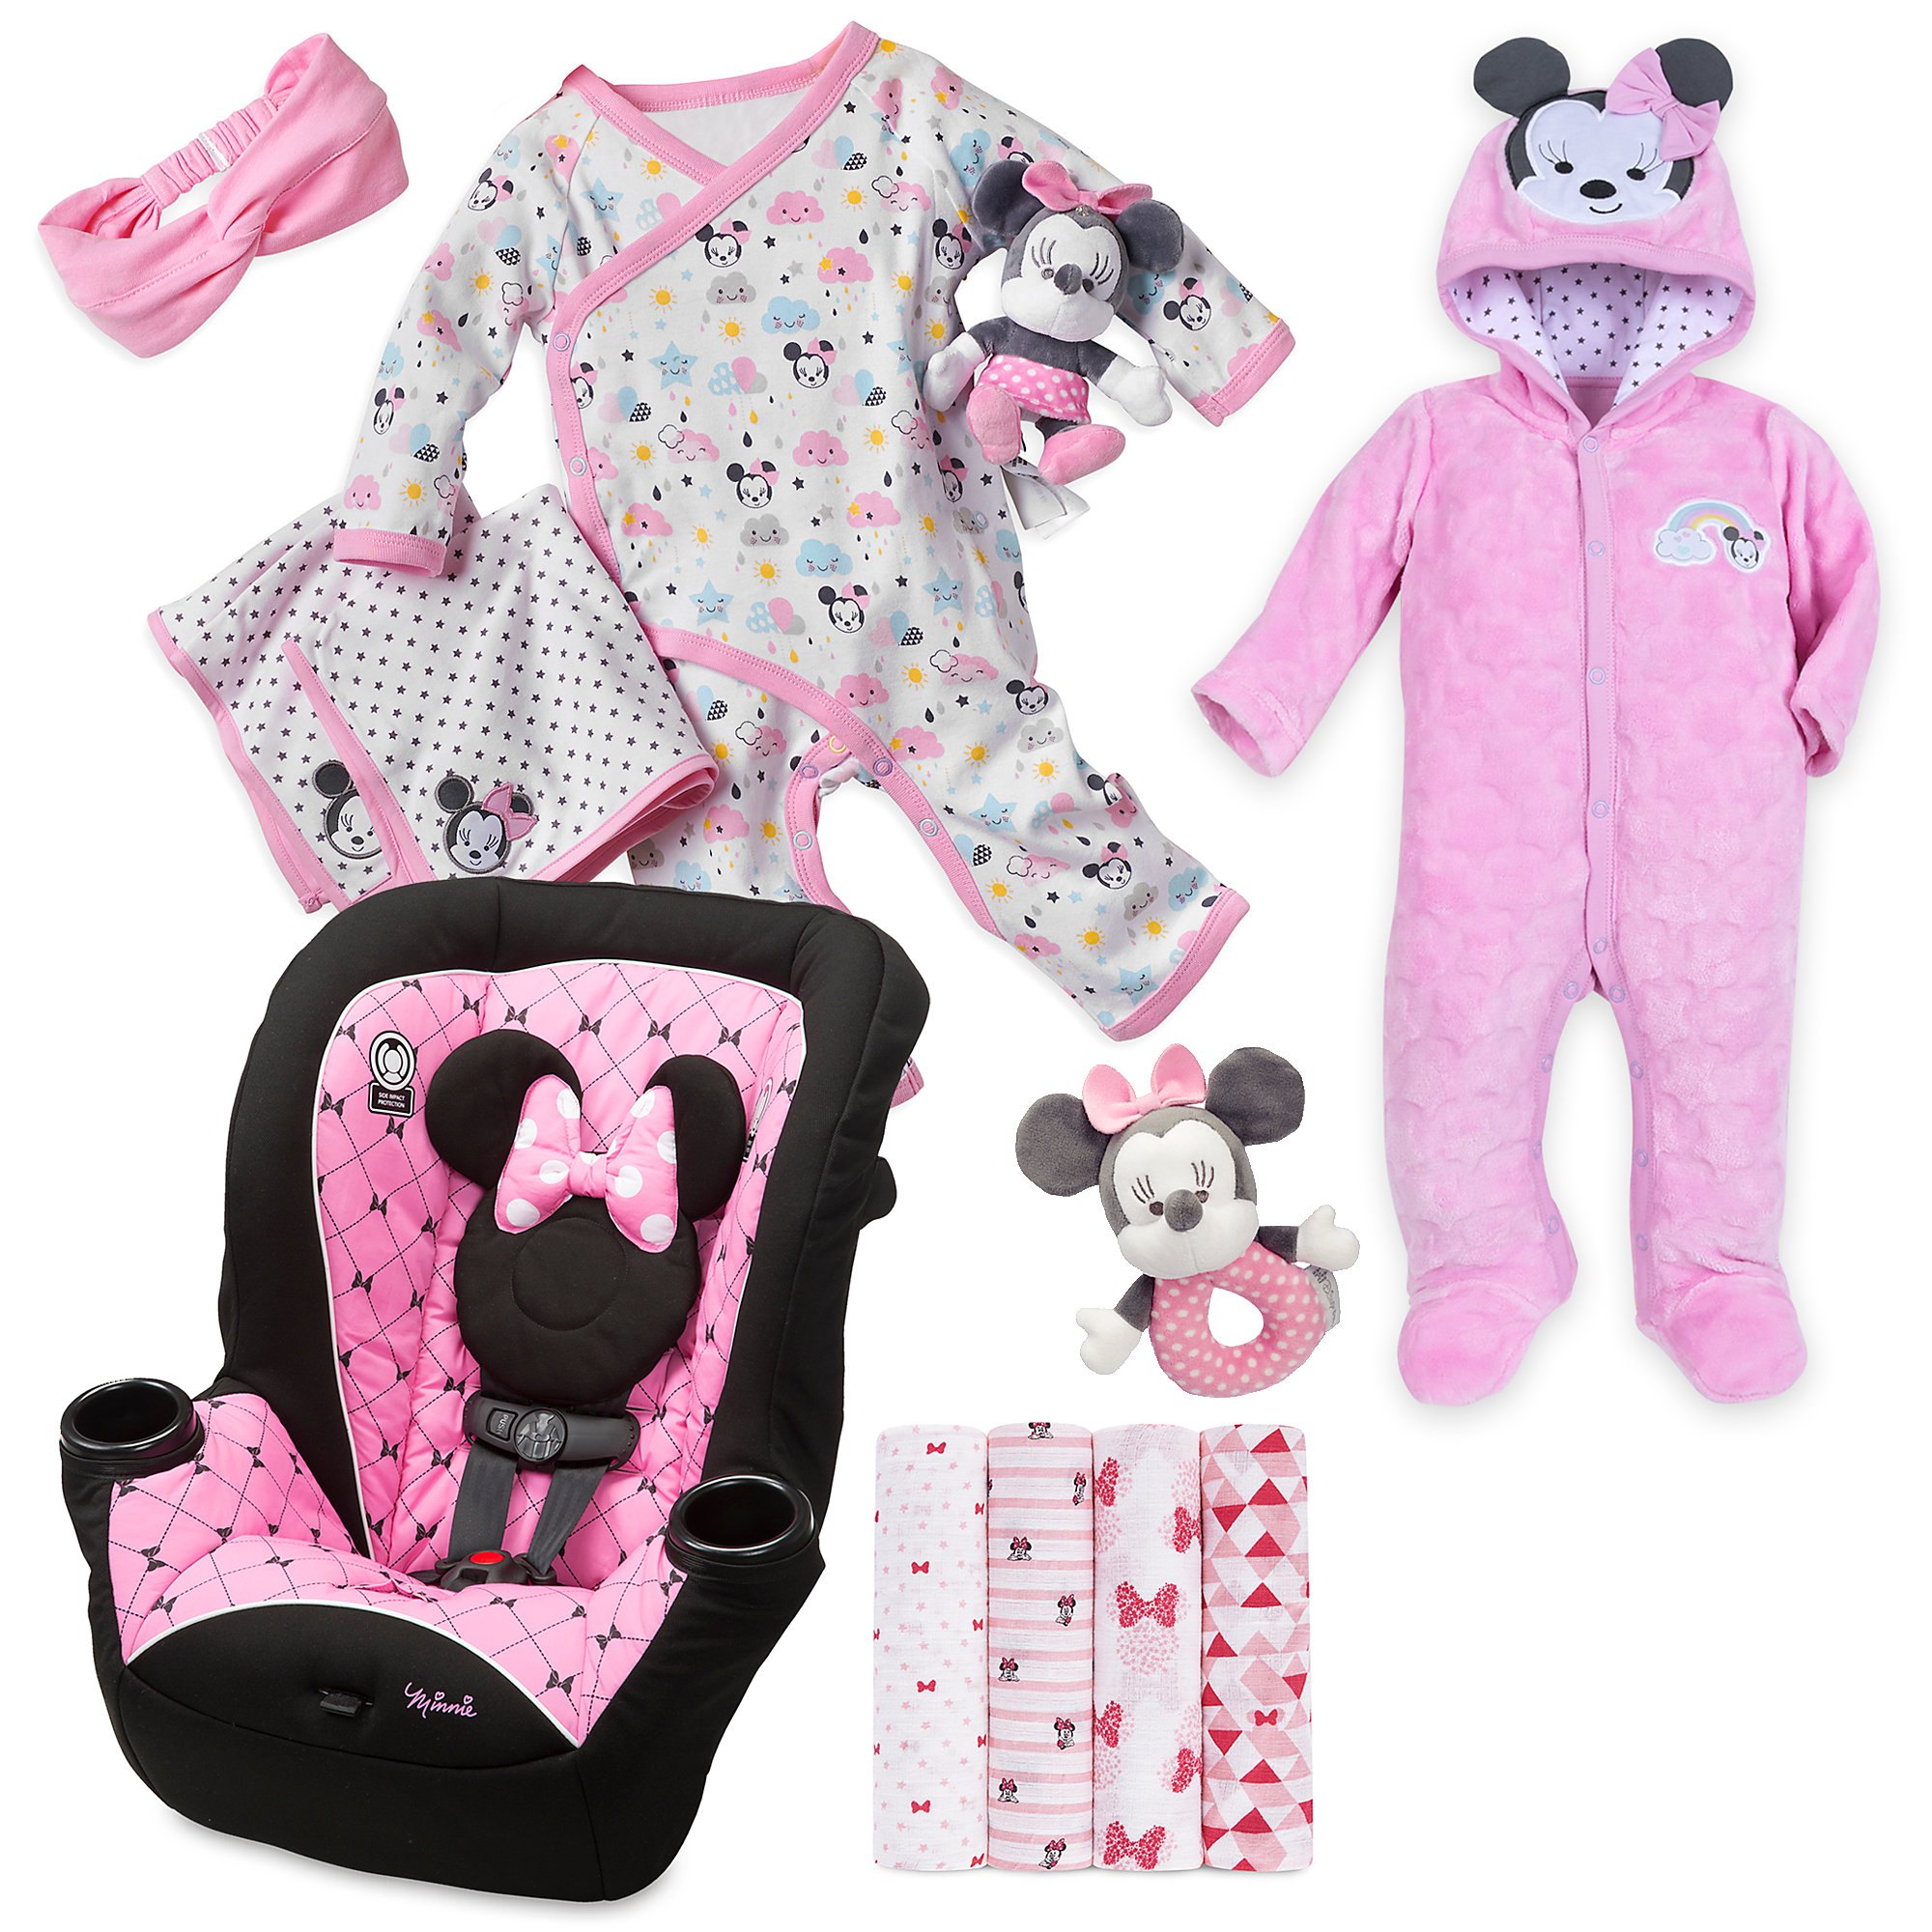 Minnie Mouse Welcome Home Gift Collection for Baby